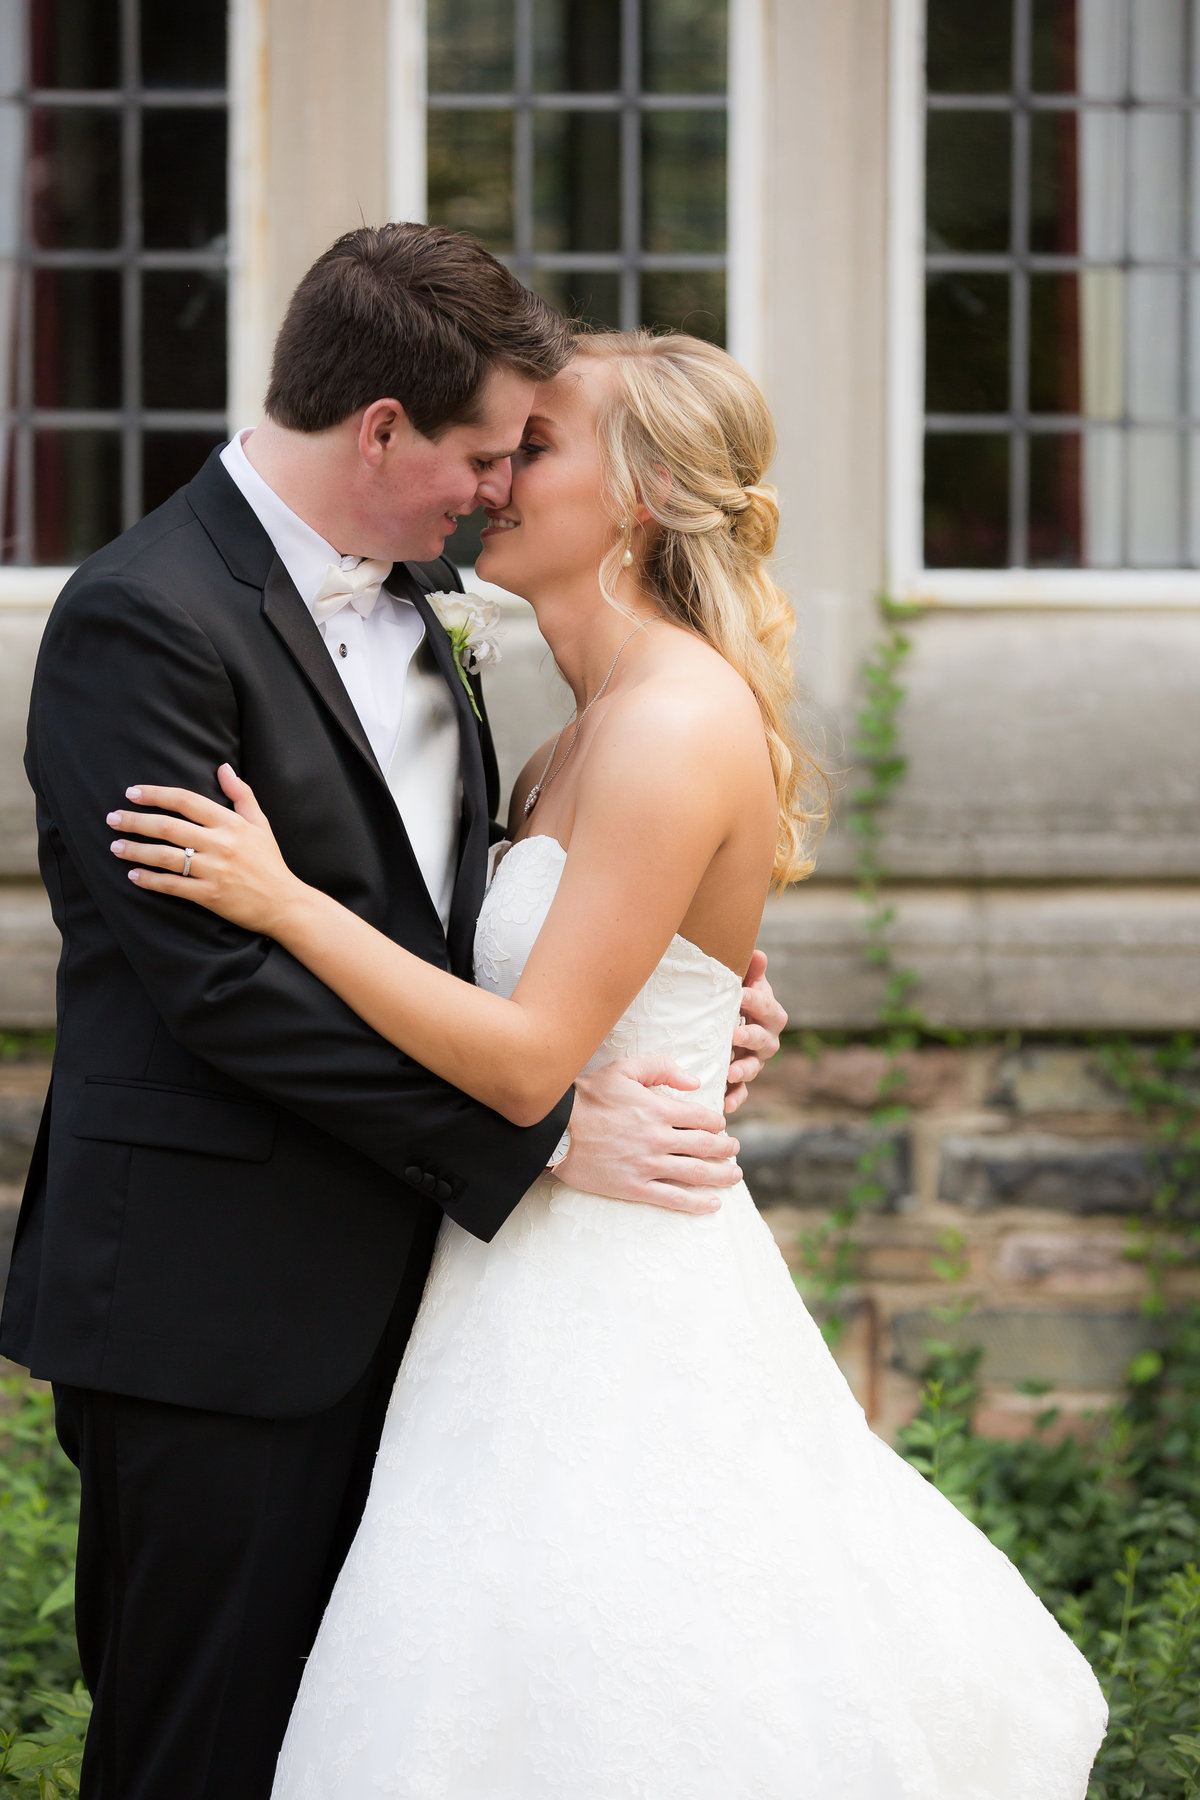 Chapel Wedding - Scaritt Bennett - Nashville Bride - Nashville Brides - Nashville Wedding - Nashvilel Weddings - Southern Bride - Traditional Bride015